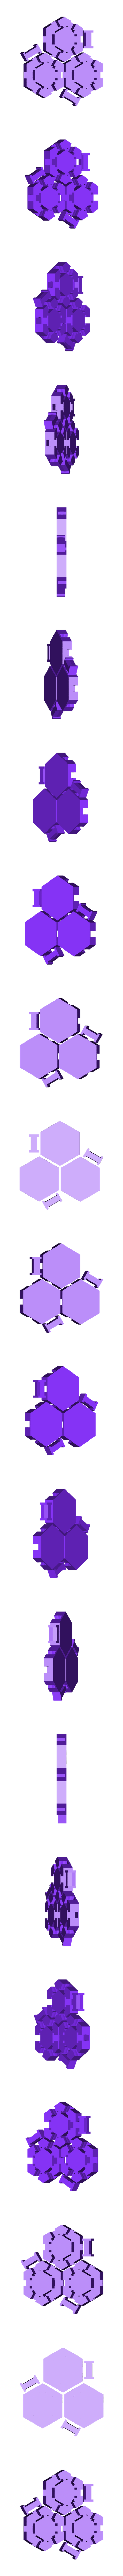 tile_pin_x3.stl Download free STL file Hex Tile Fidget Spinner • 3D printing object, CyberCyclist